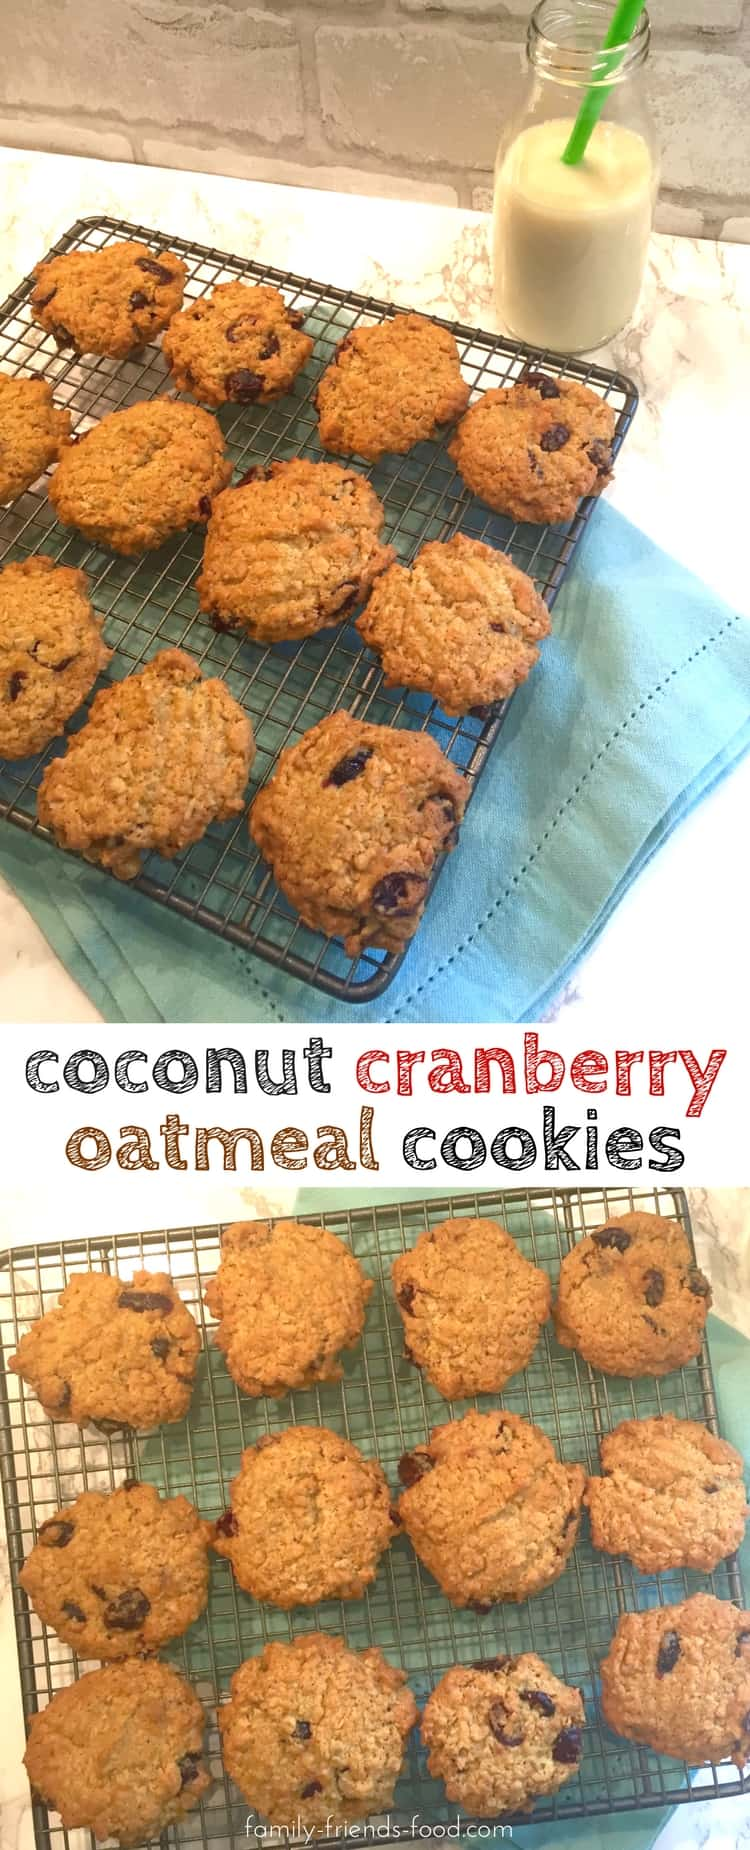 Crisp on the outside, chewy on the inside, & with the delicious flavour of coconut and cranberries, these oatmeal cookies will soon be a family favourite!